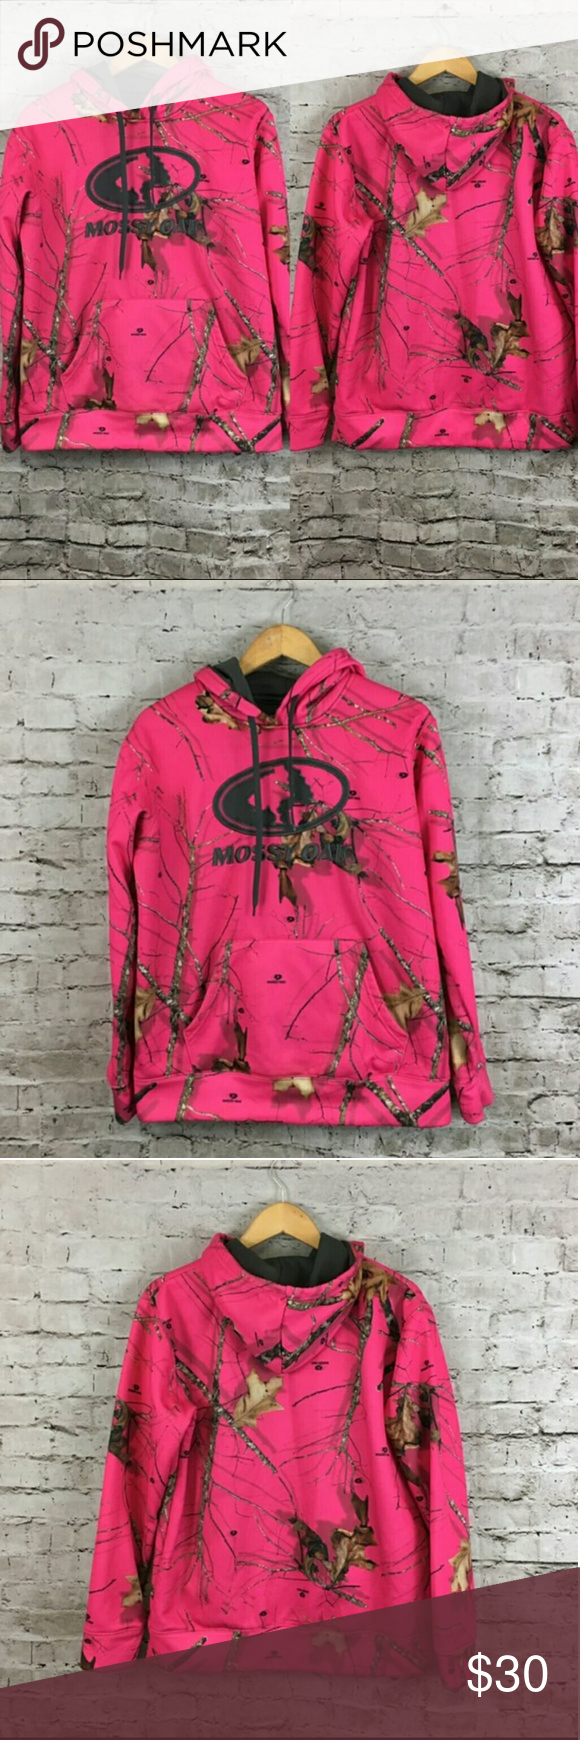 26836ed5d44bd NWT Camo Hot Pink Plus Size Hoodie Size 2X You will love this Mossy Oak  Pullover